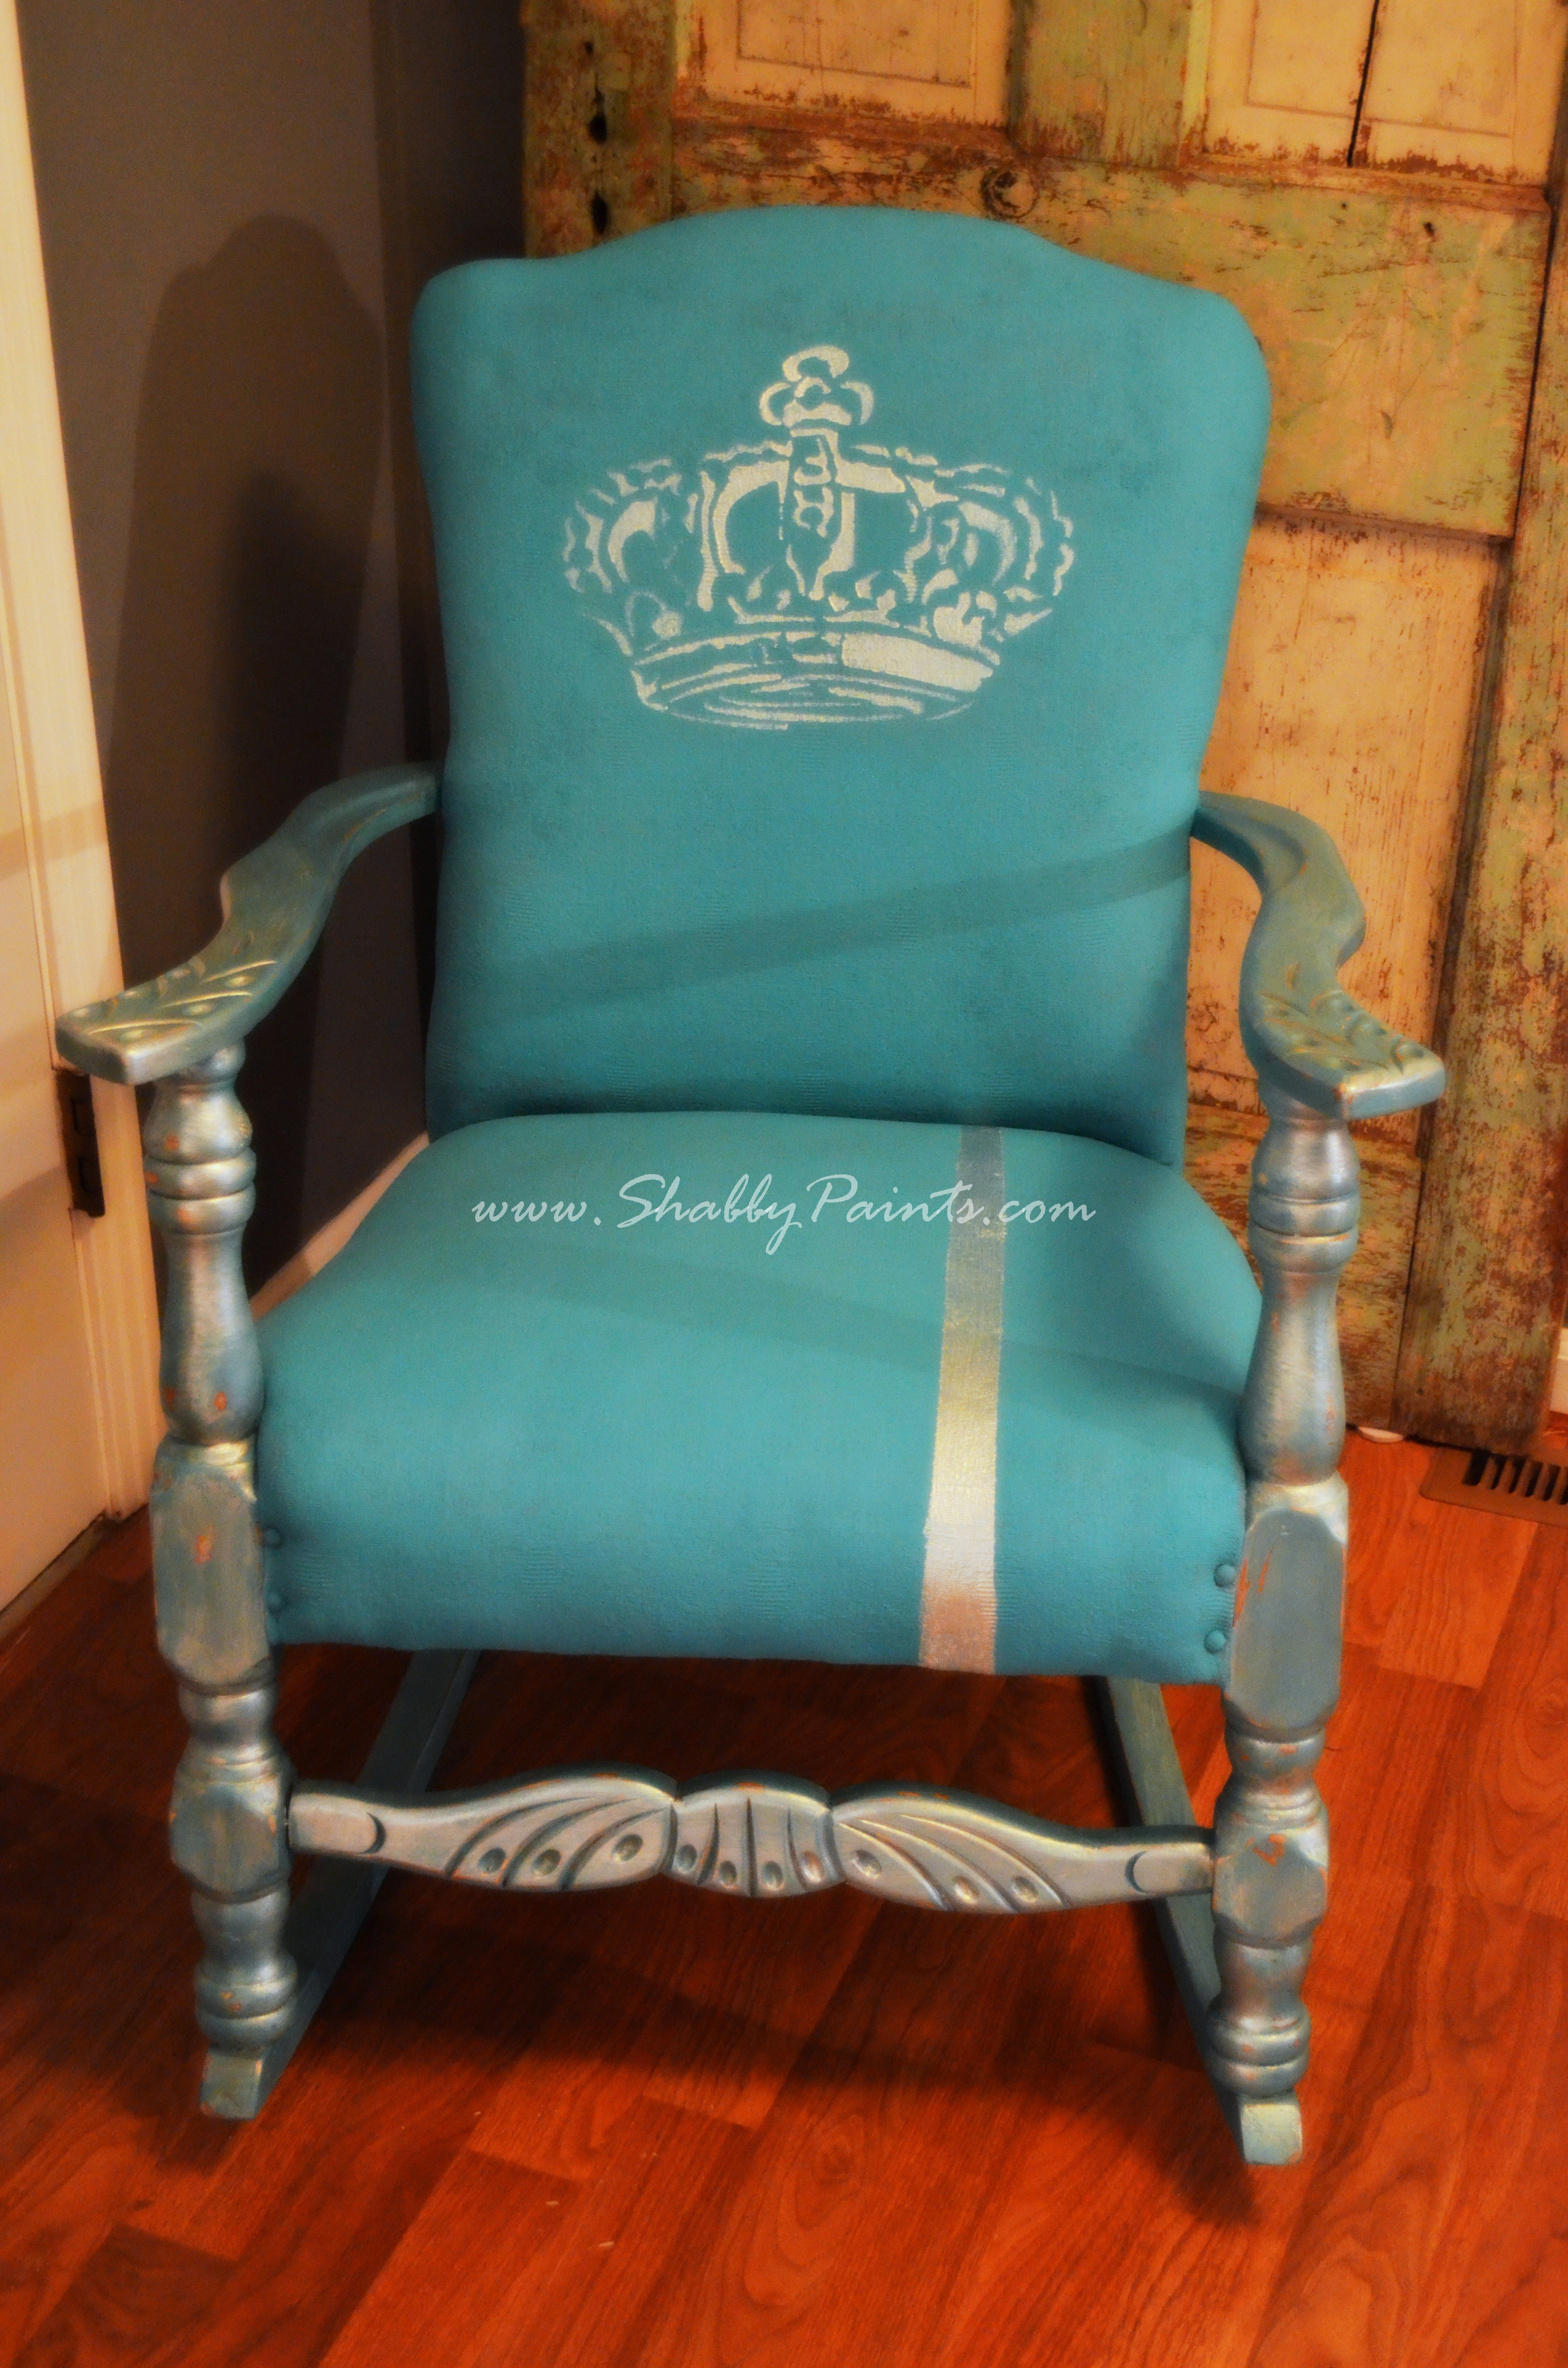 Shabby chic painted rocking chairs - How